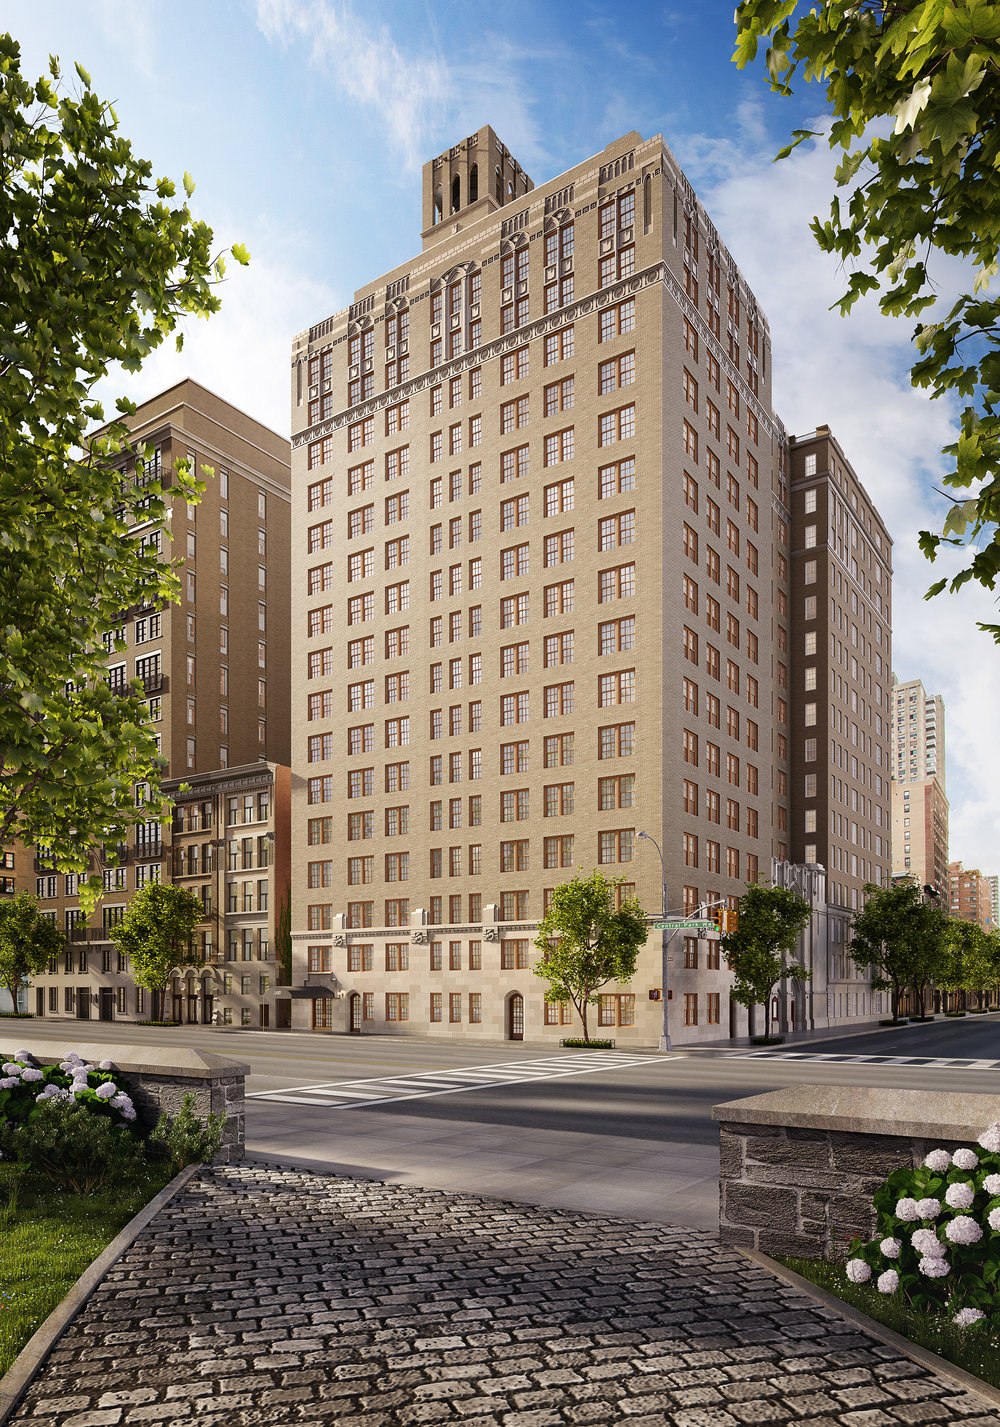 360 Central Park West, CetraRuddy's Reimagine Of The Historic Rosario Candela-Design On The Upper West Side, Commences Closings